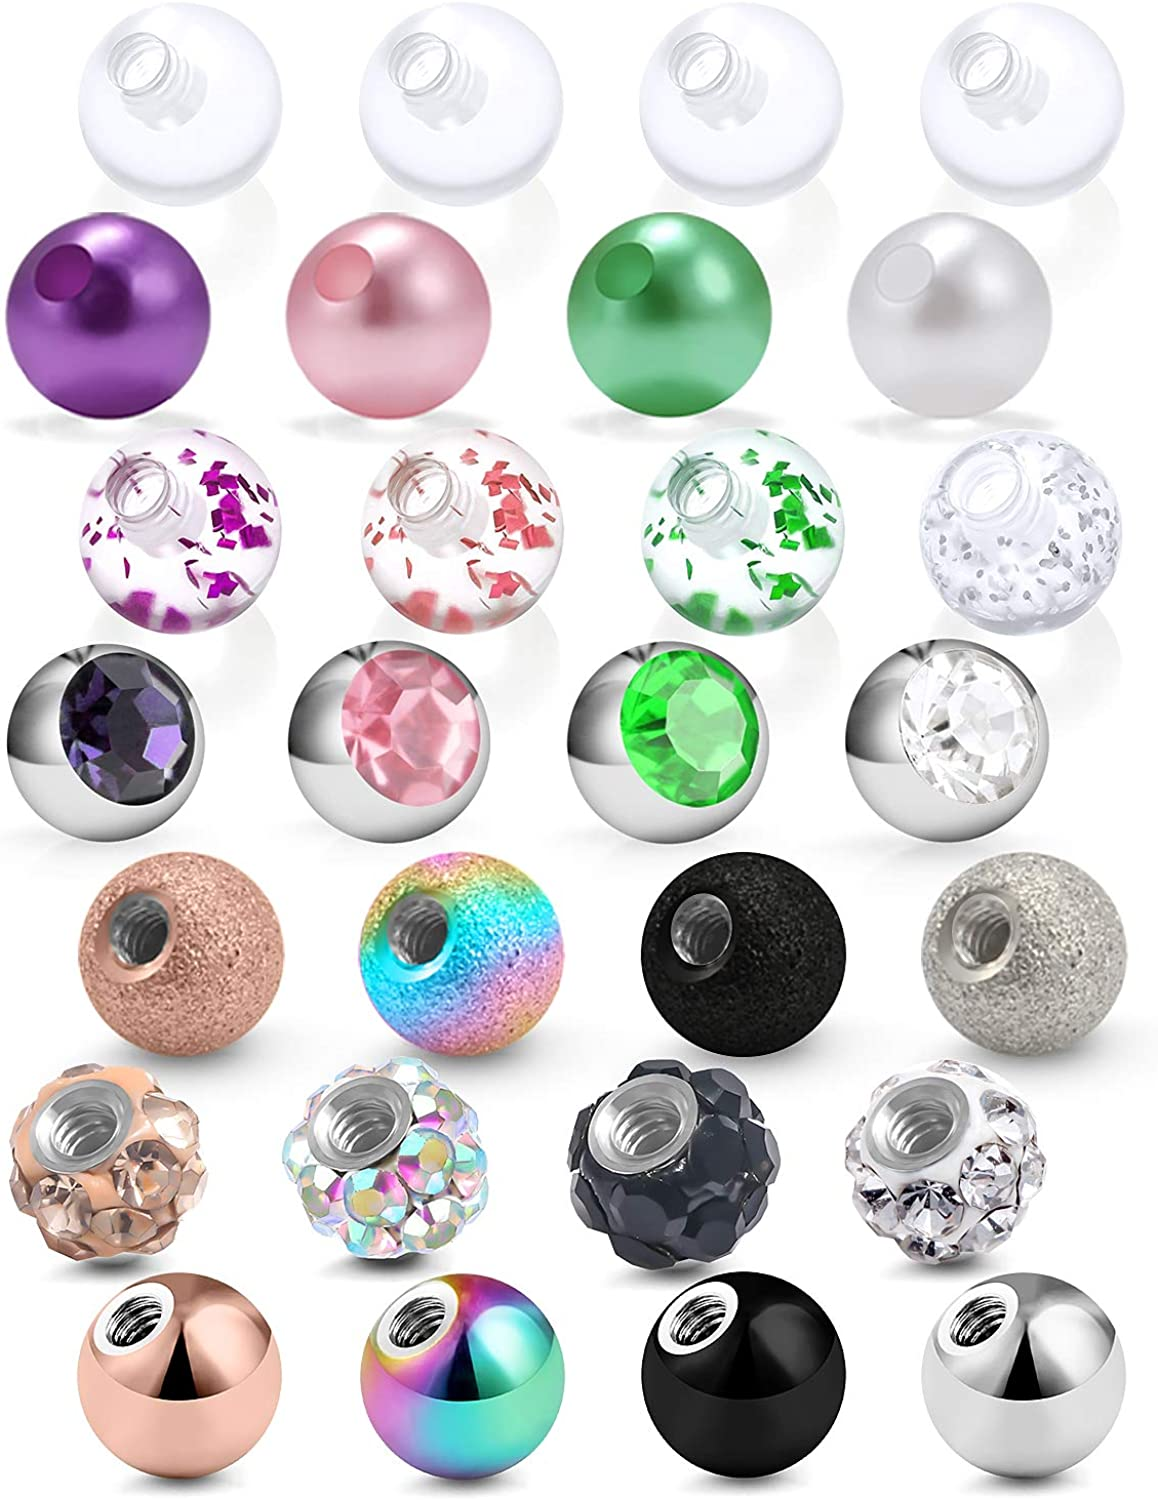 SCERRING 14G Ball for Piercing Replacement Balls Externally Threaded Nipple Industrial Tongue Belly Piercing Rings Body Jewelry Piercing Barbell Parts 5mm 28PCS